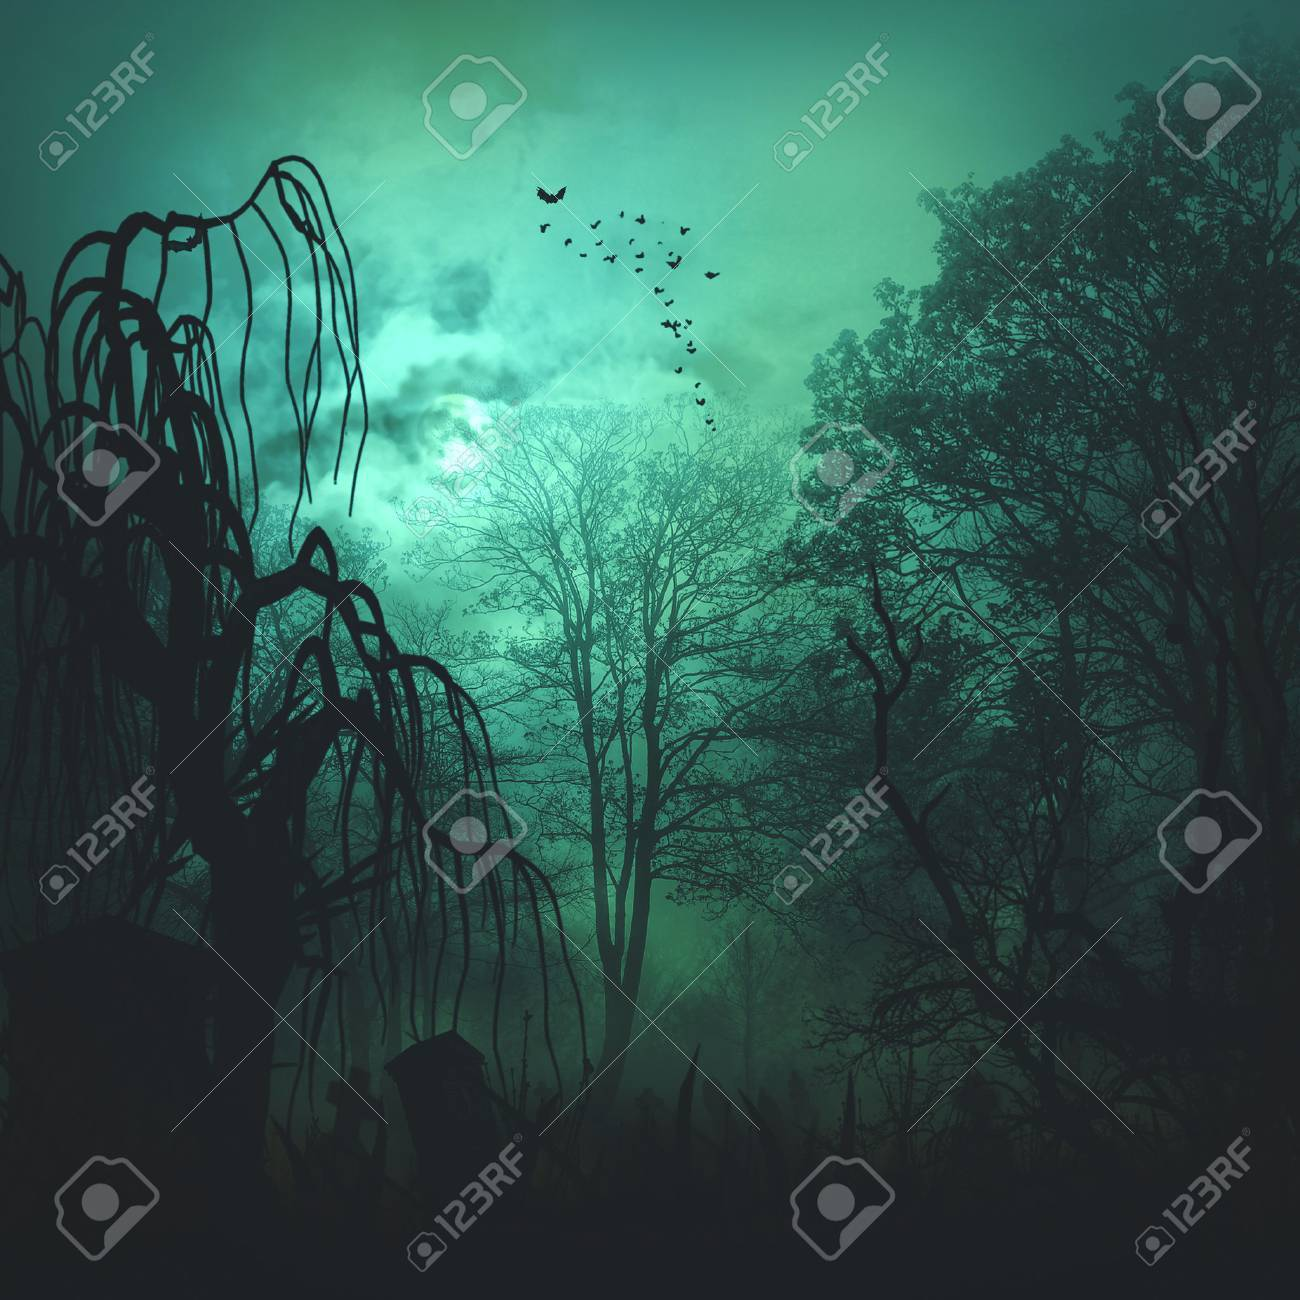 Abstract horror backgrounds for your design - 23432019